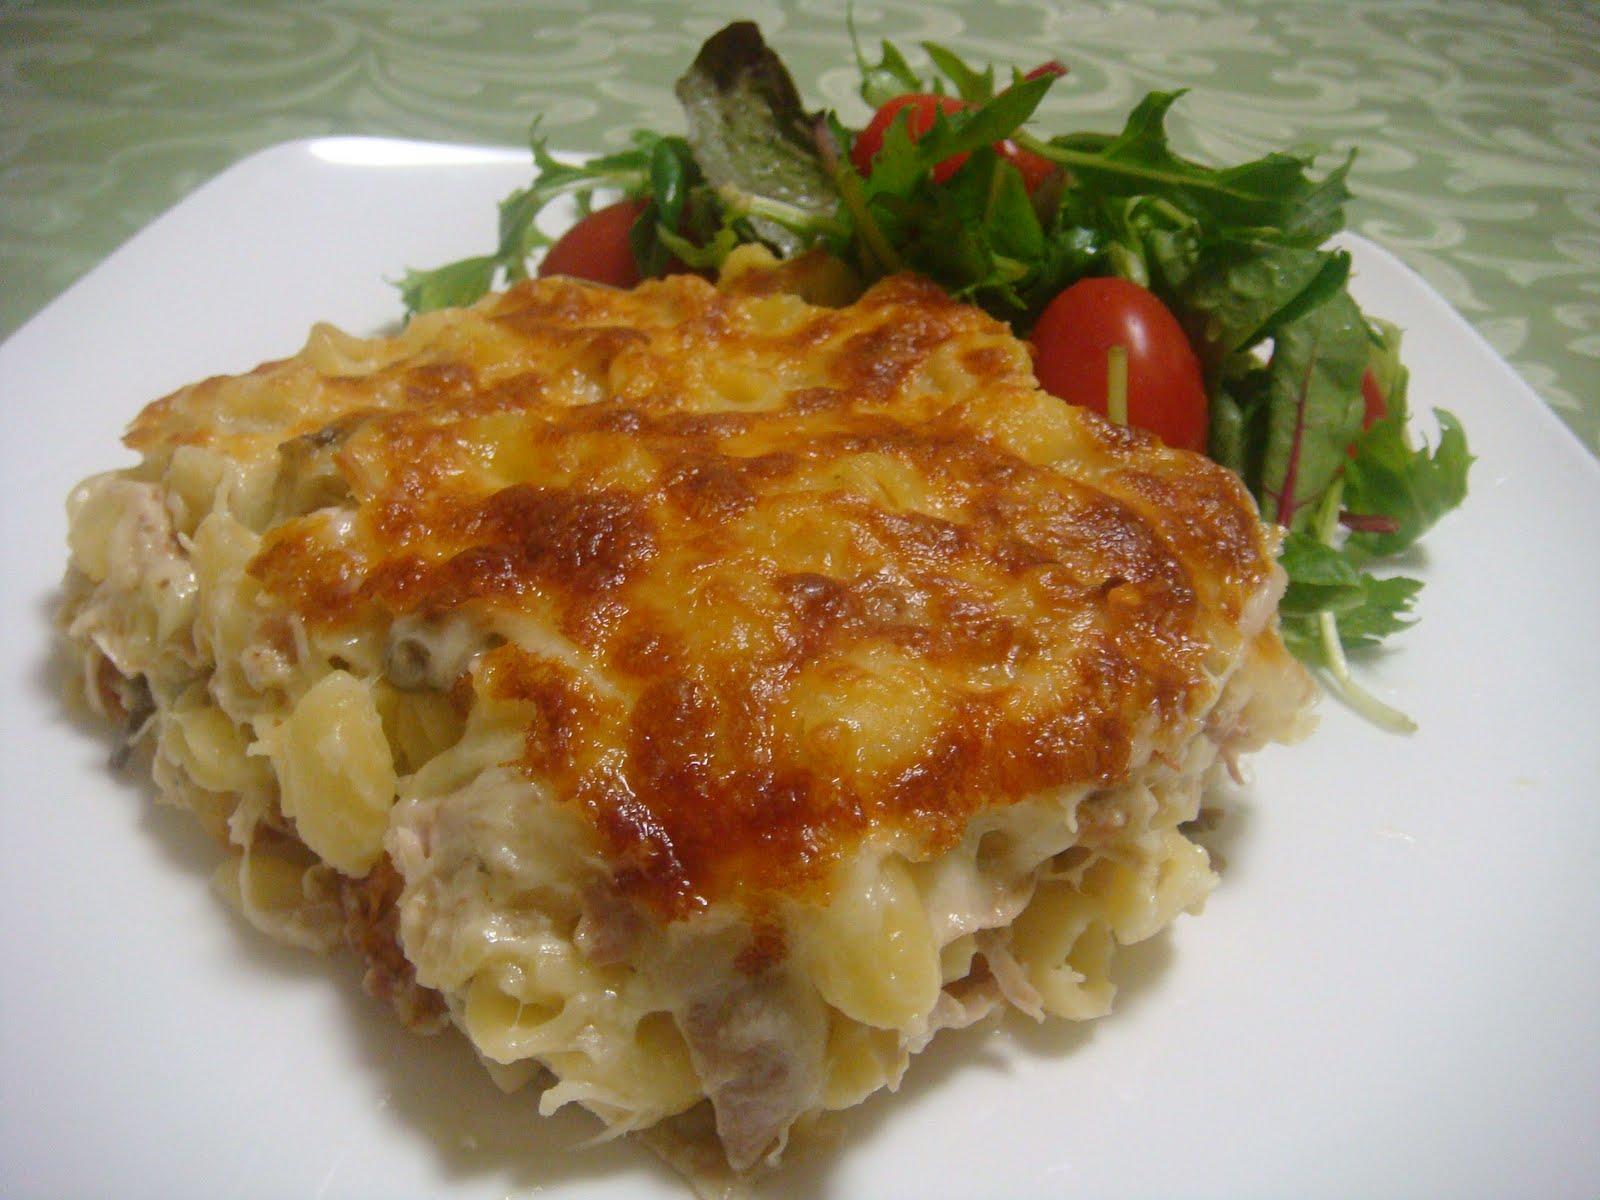 Saucy Thyme: Chicken, Mushroom and Brie Pasta Bake